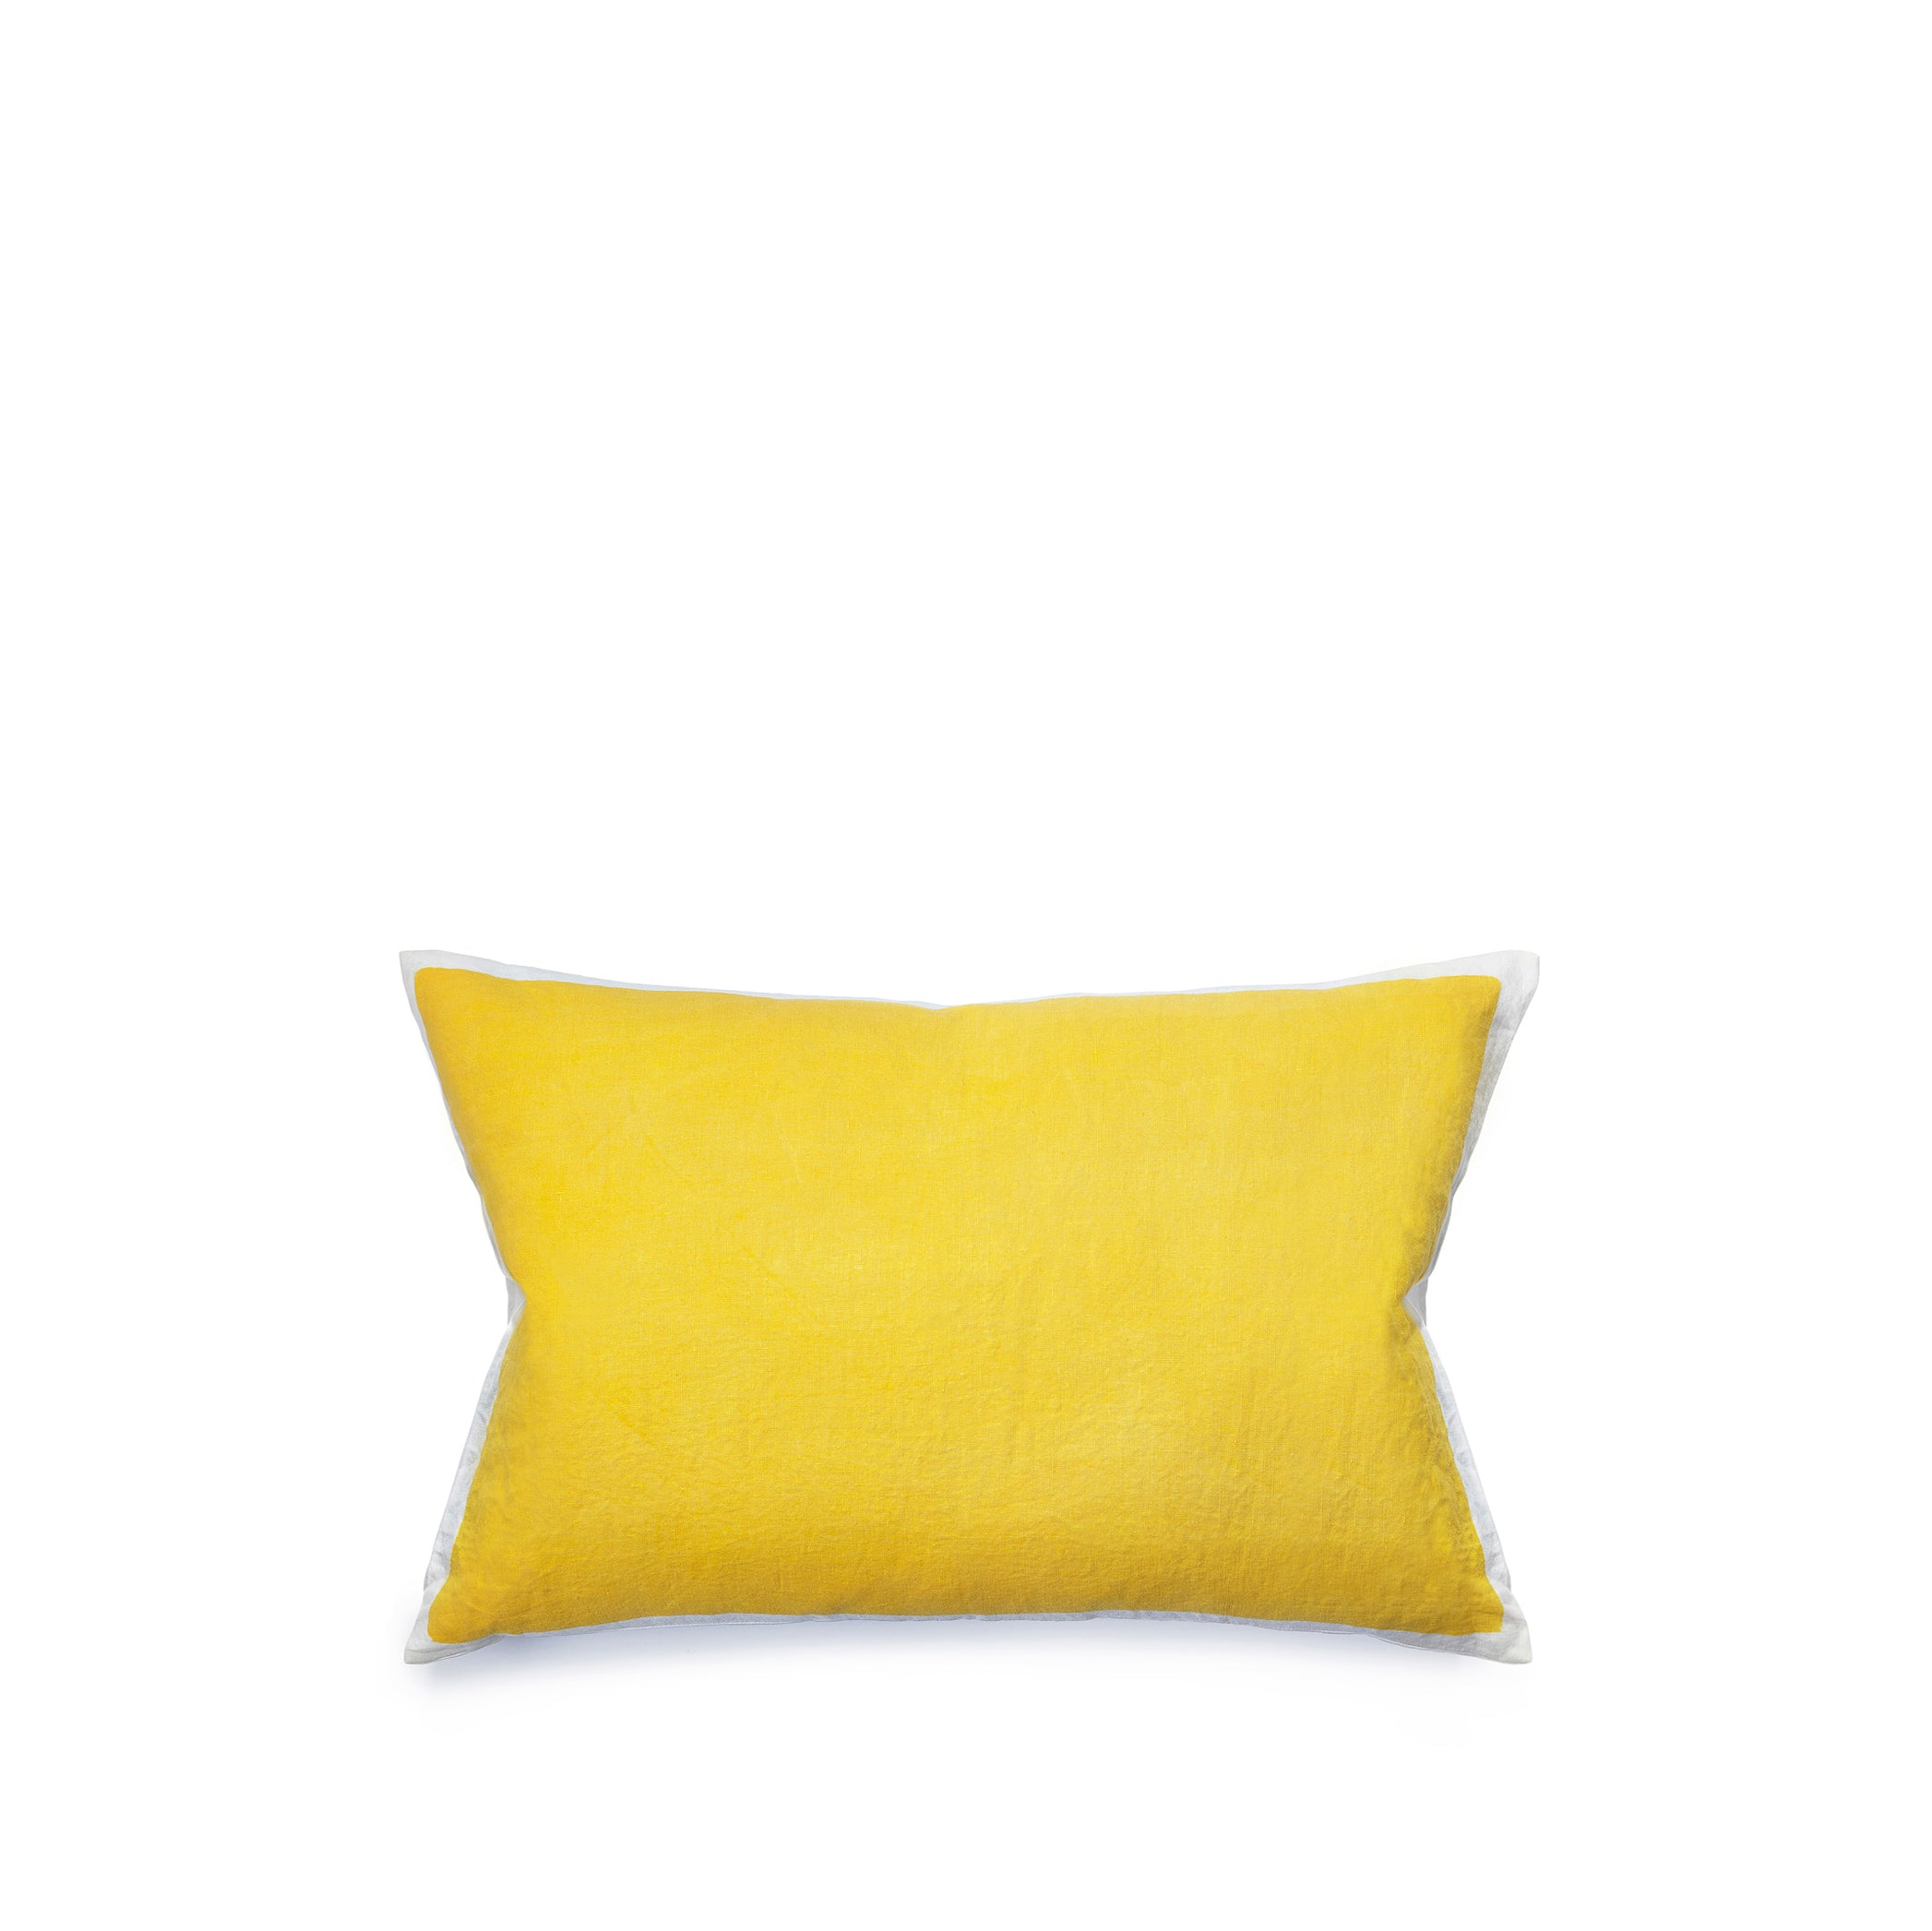 Hand Painted Linen Cushion in Lemon Yellow, 60cm x 40cm